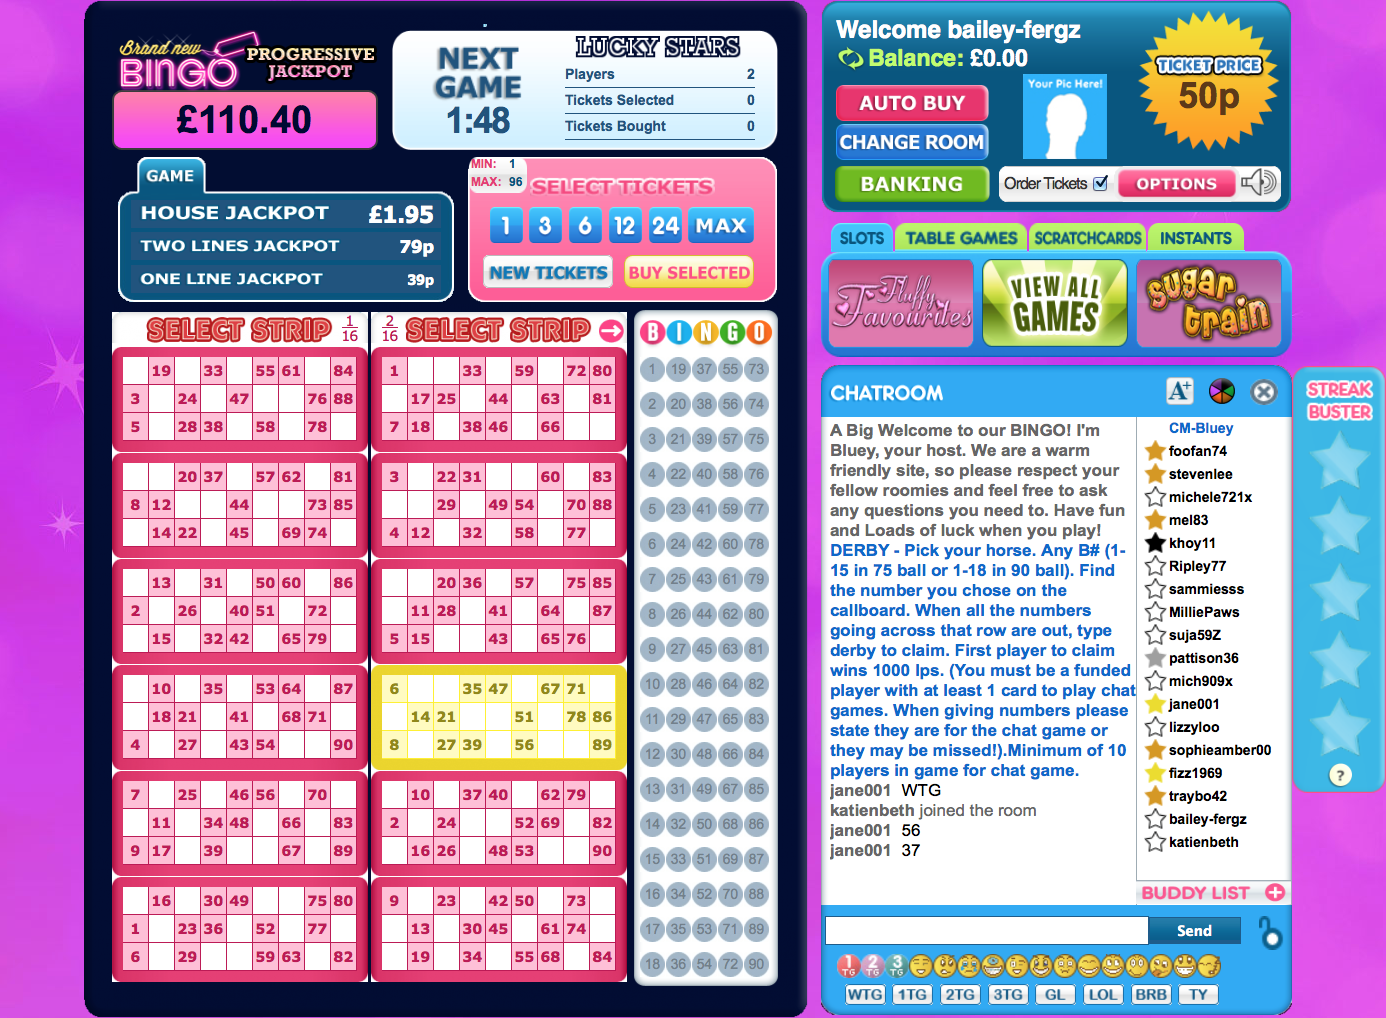 brand new bingo sites